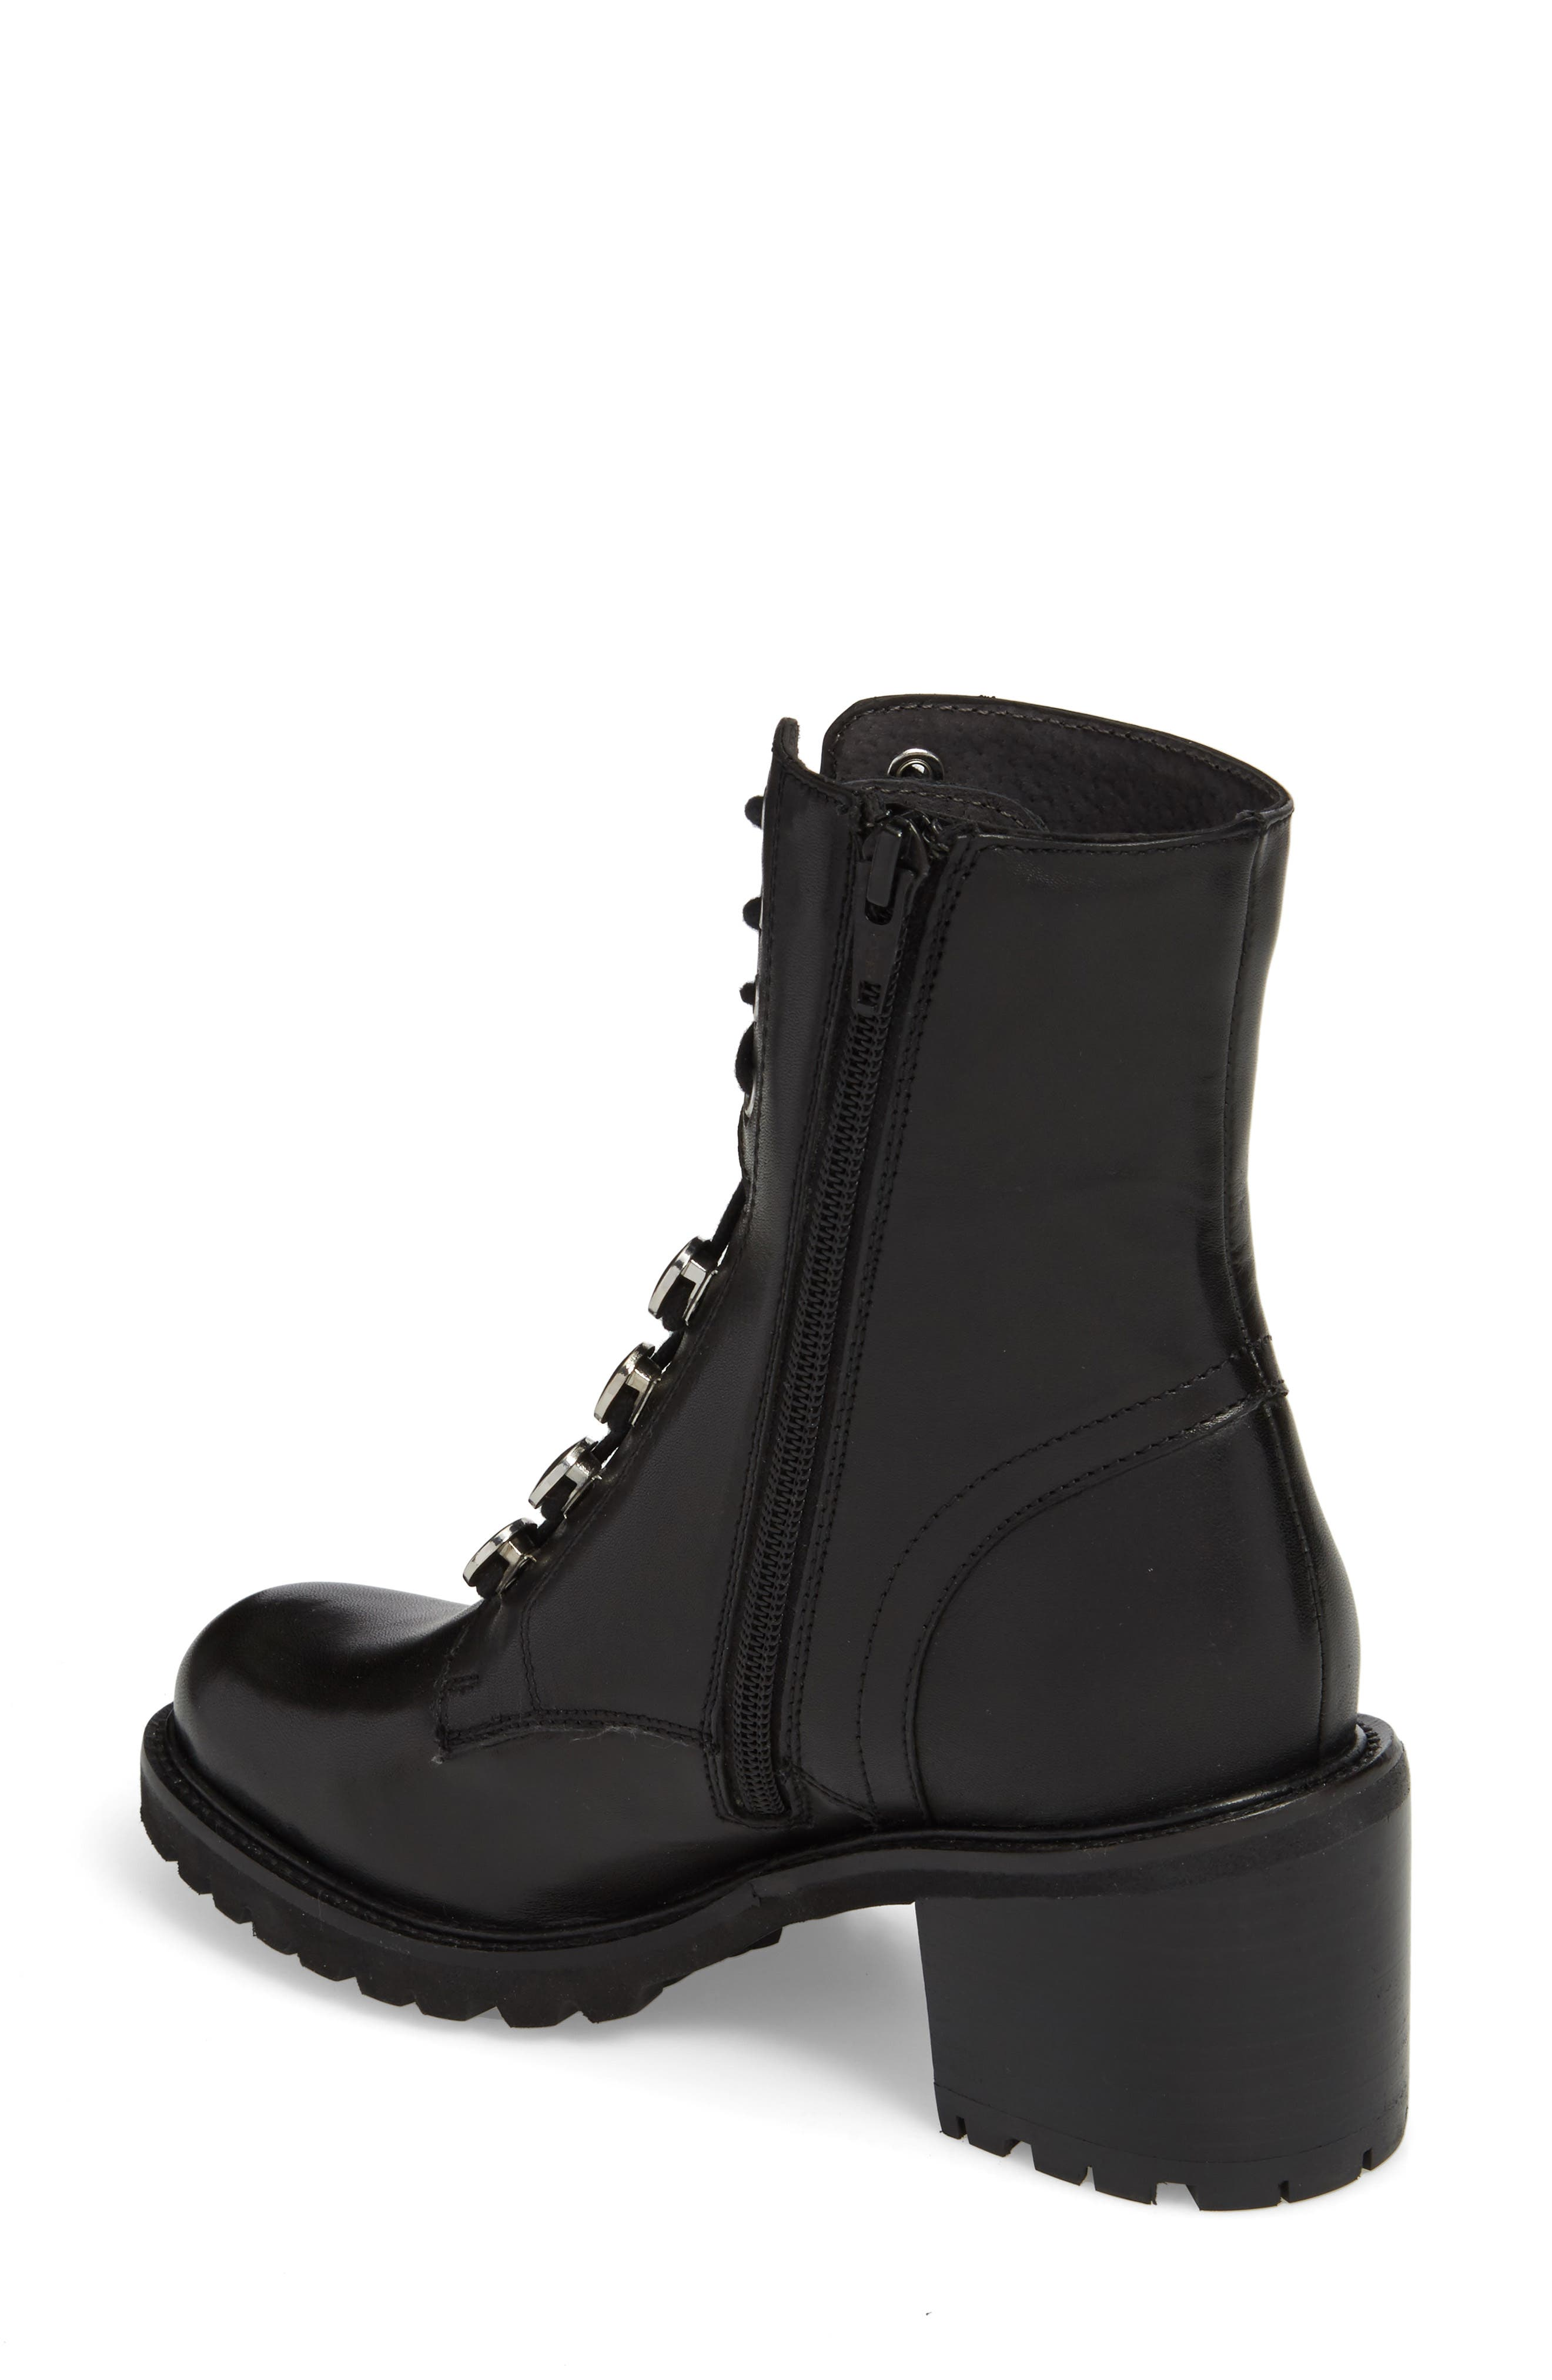 Make it Count Lace-Up Boot,                             Alternate thumbnail 2, color,                             Black Leather